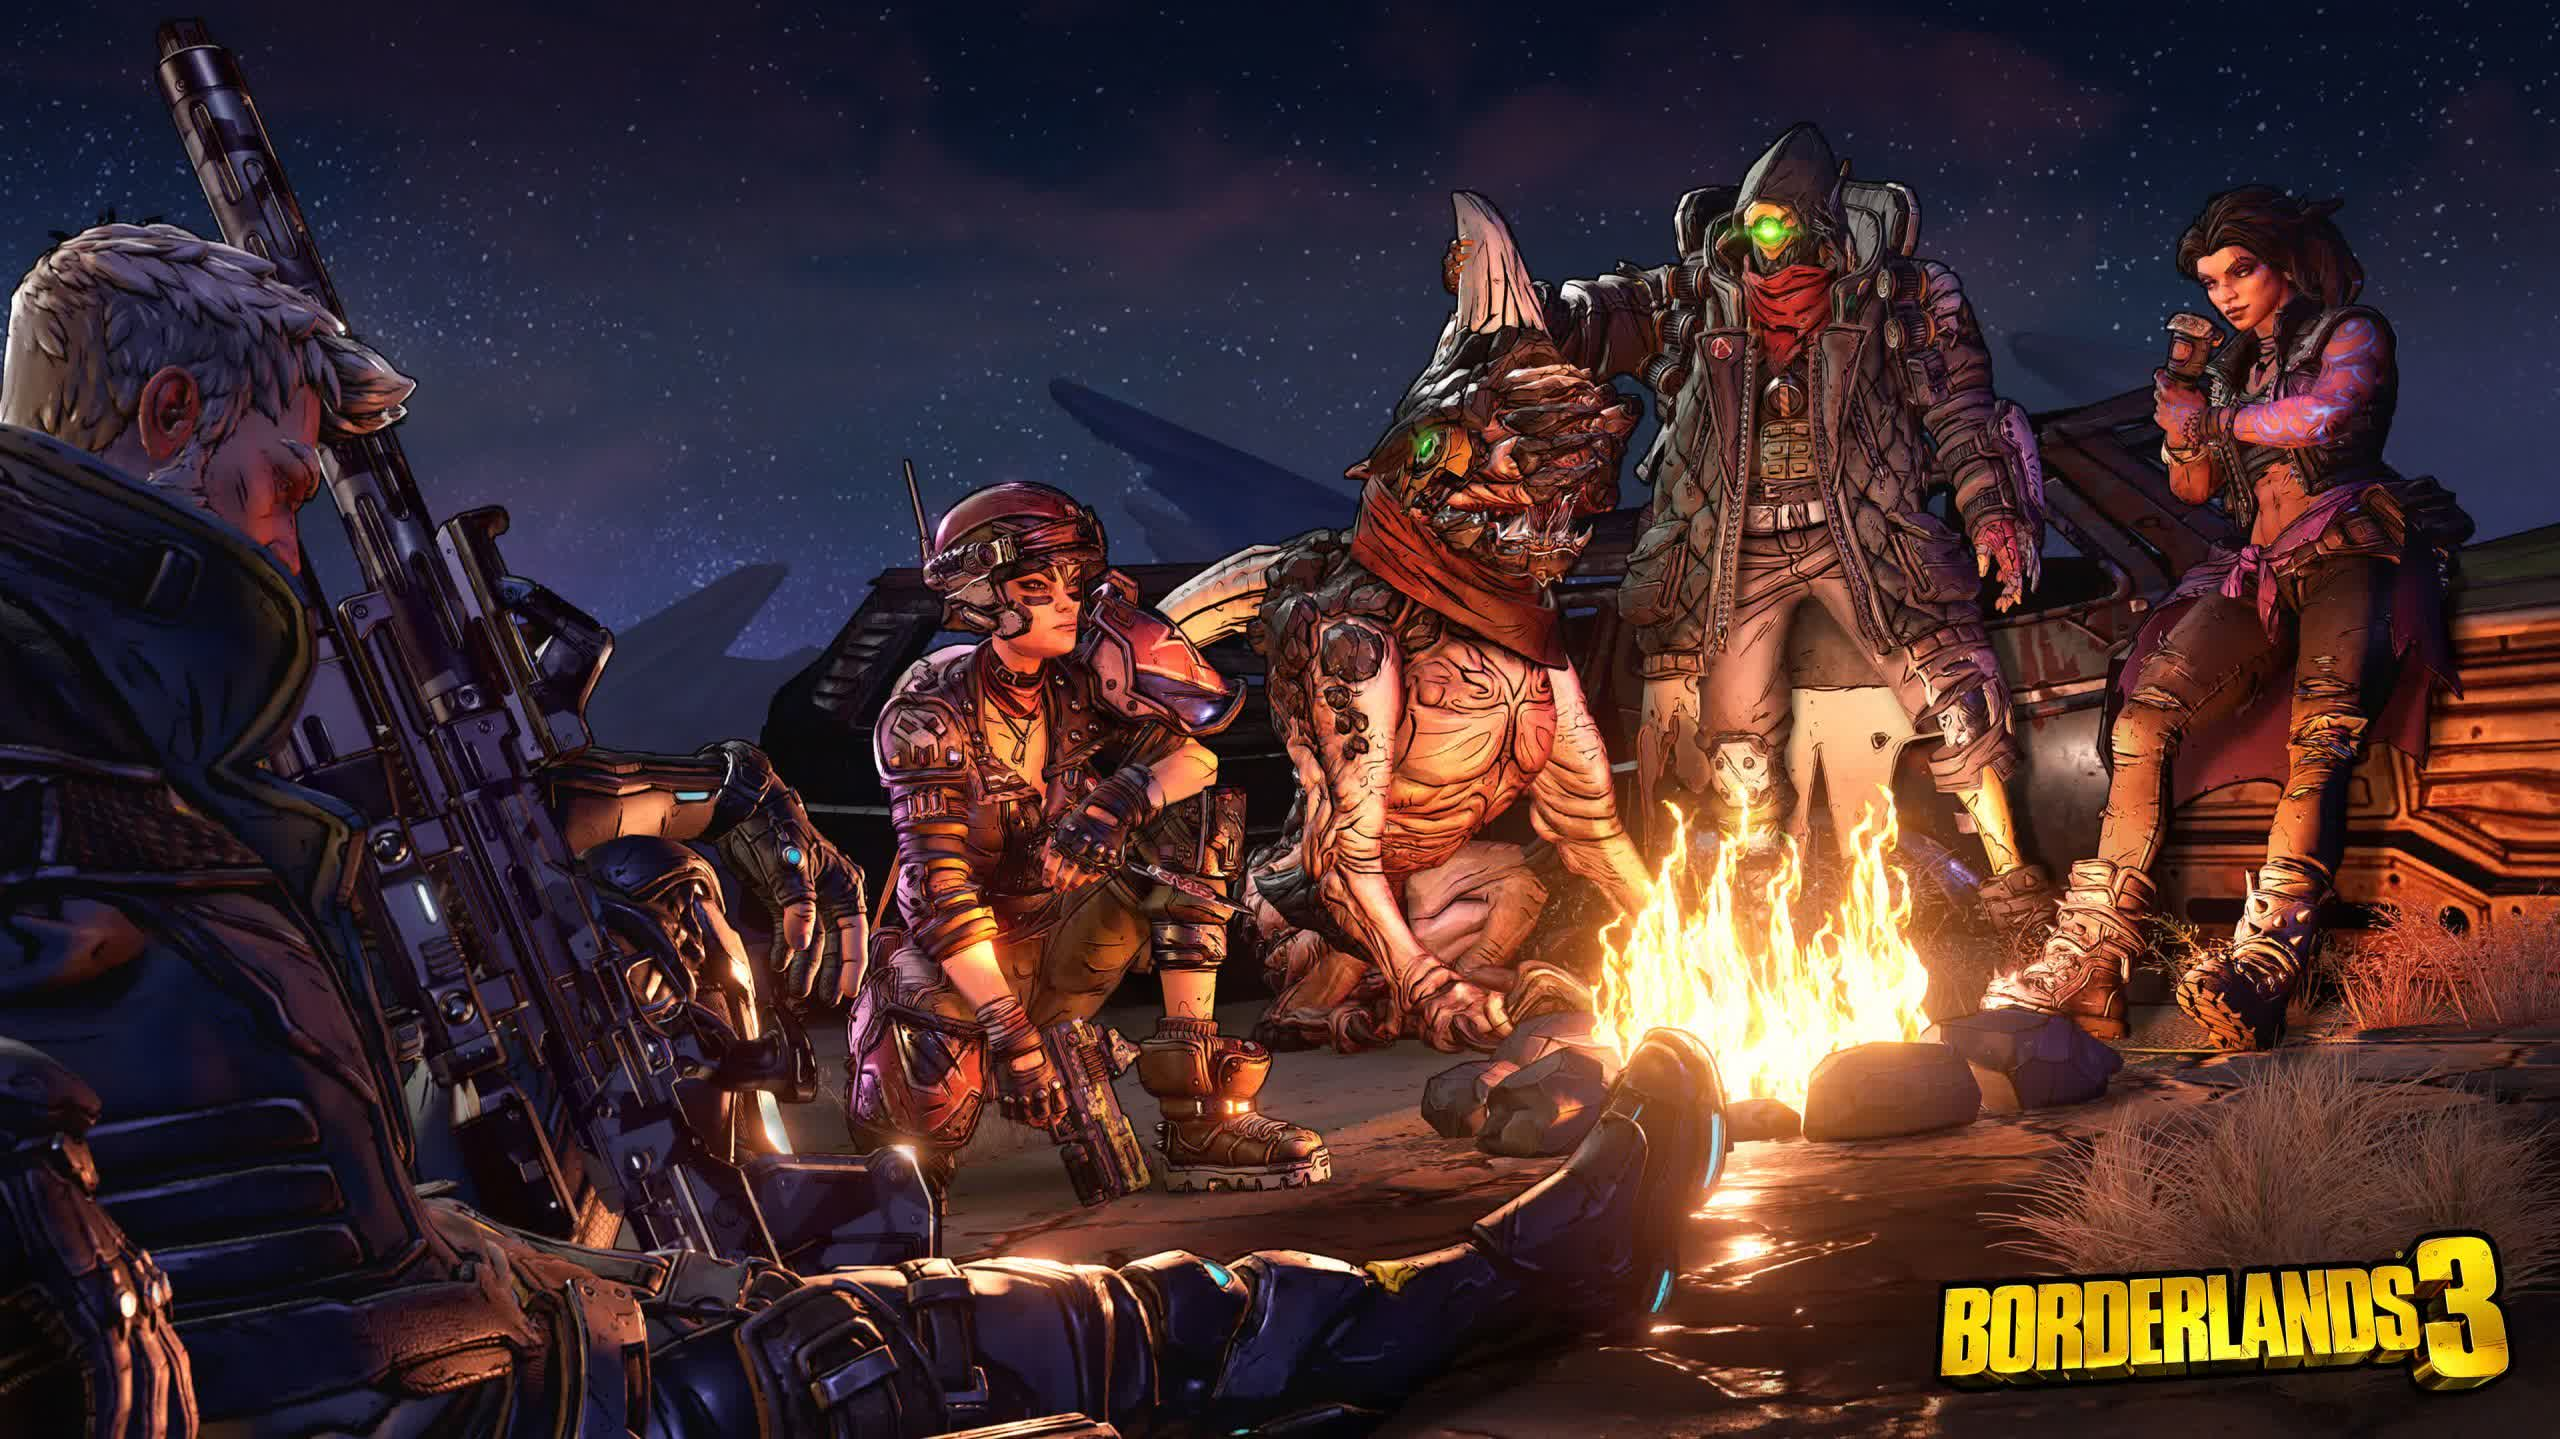 Cross-platform play is coming for Borderlands 3, but publisher 2K snuffed it for PlayStation consoles